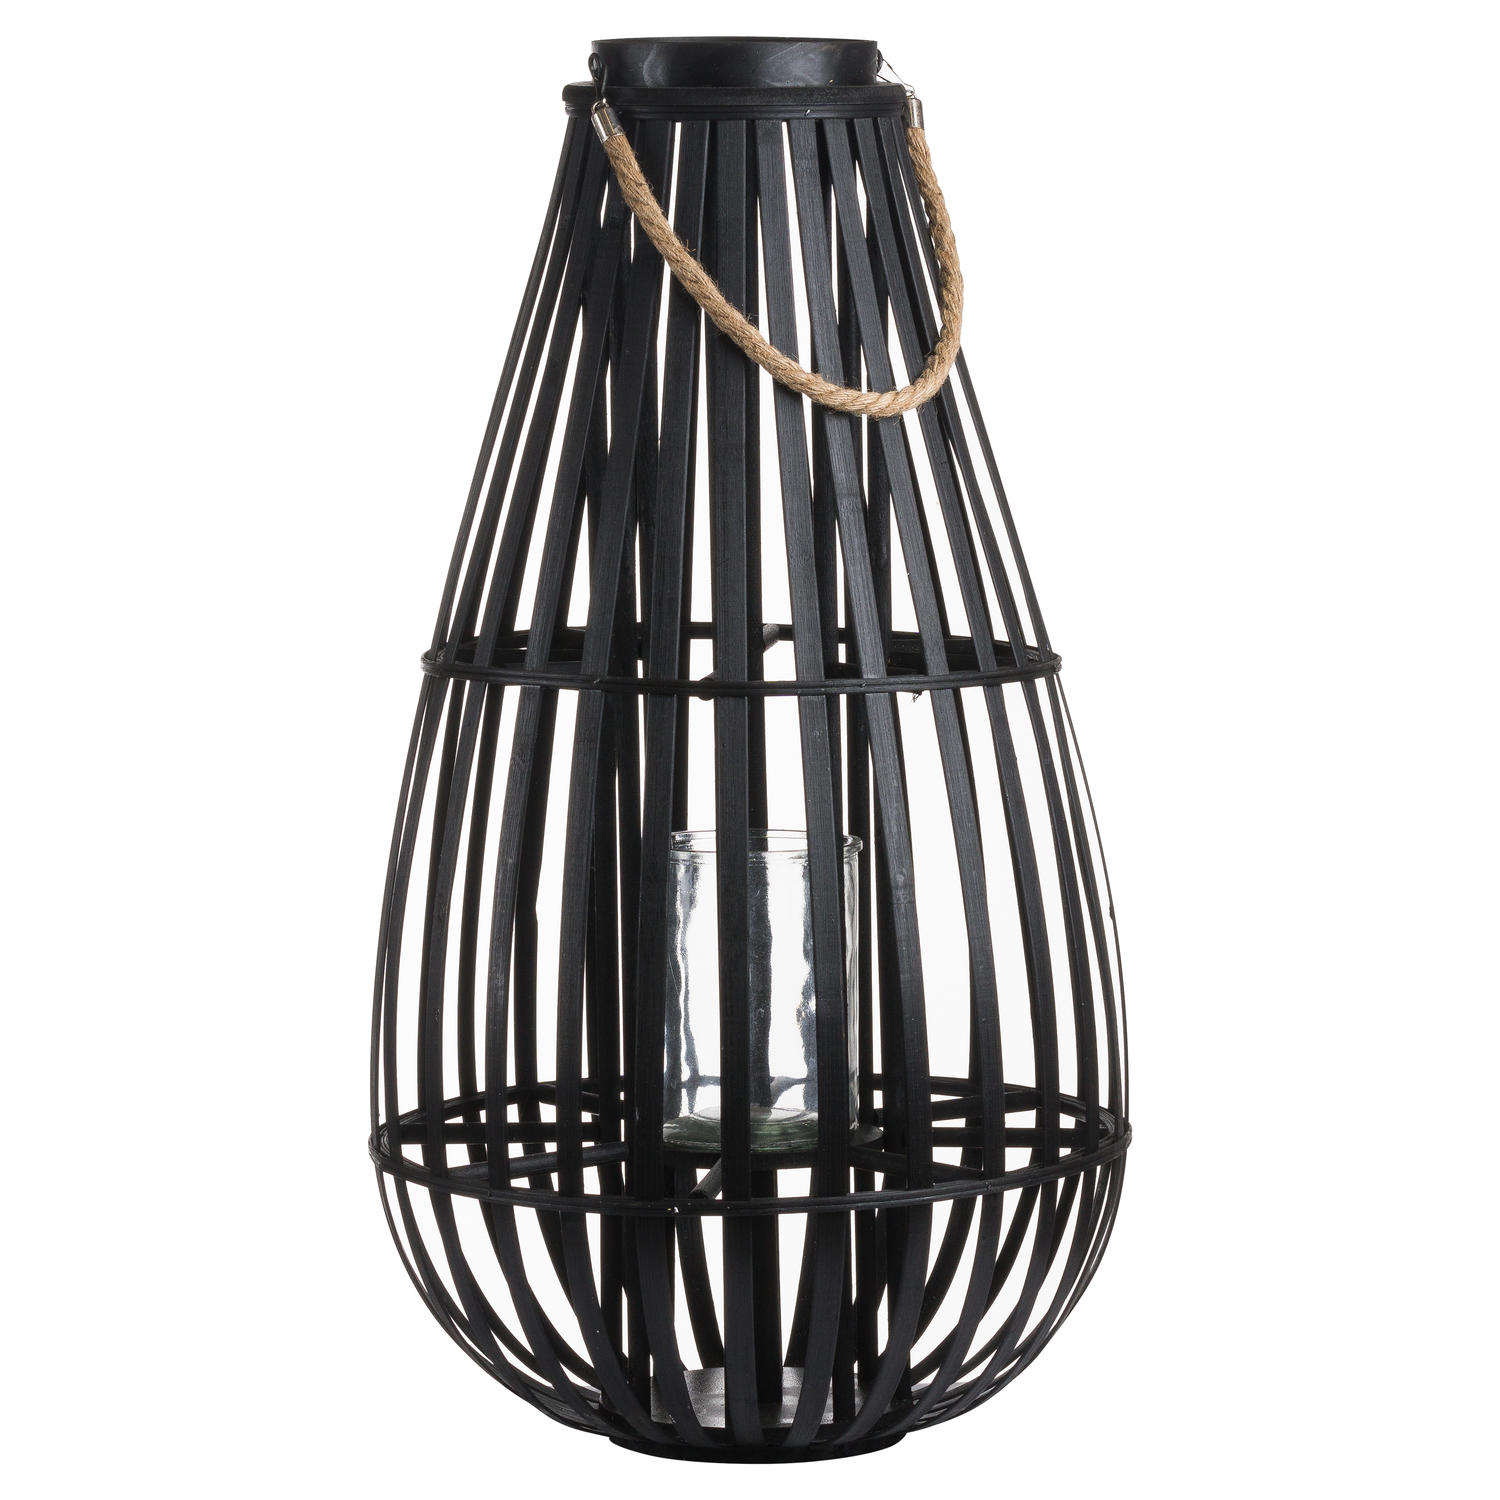 Large Floor Standing Domed Wicker Lantern With Rope Detail